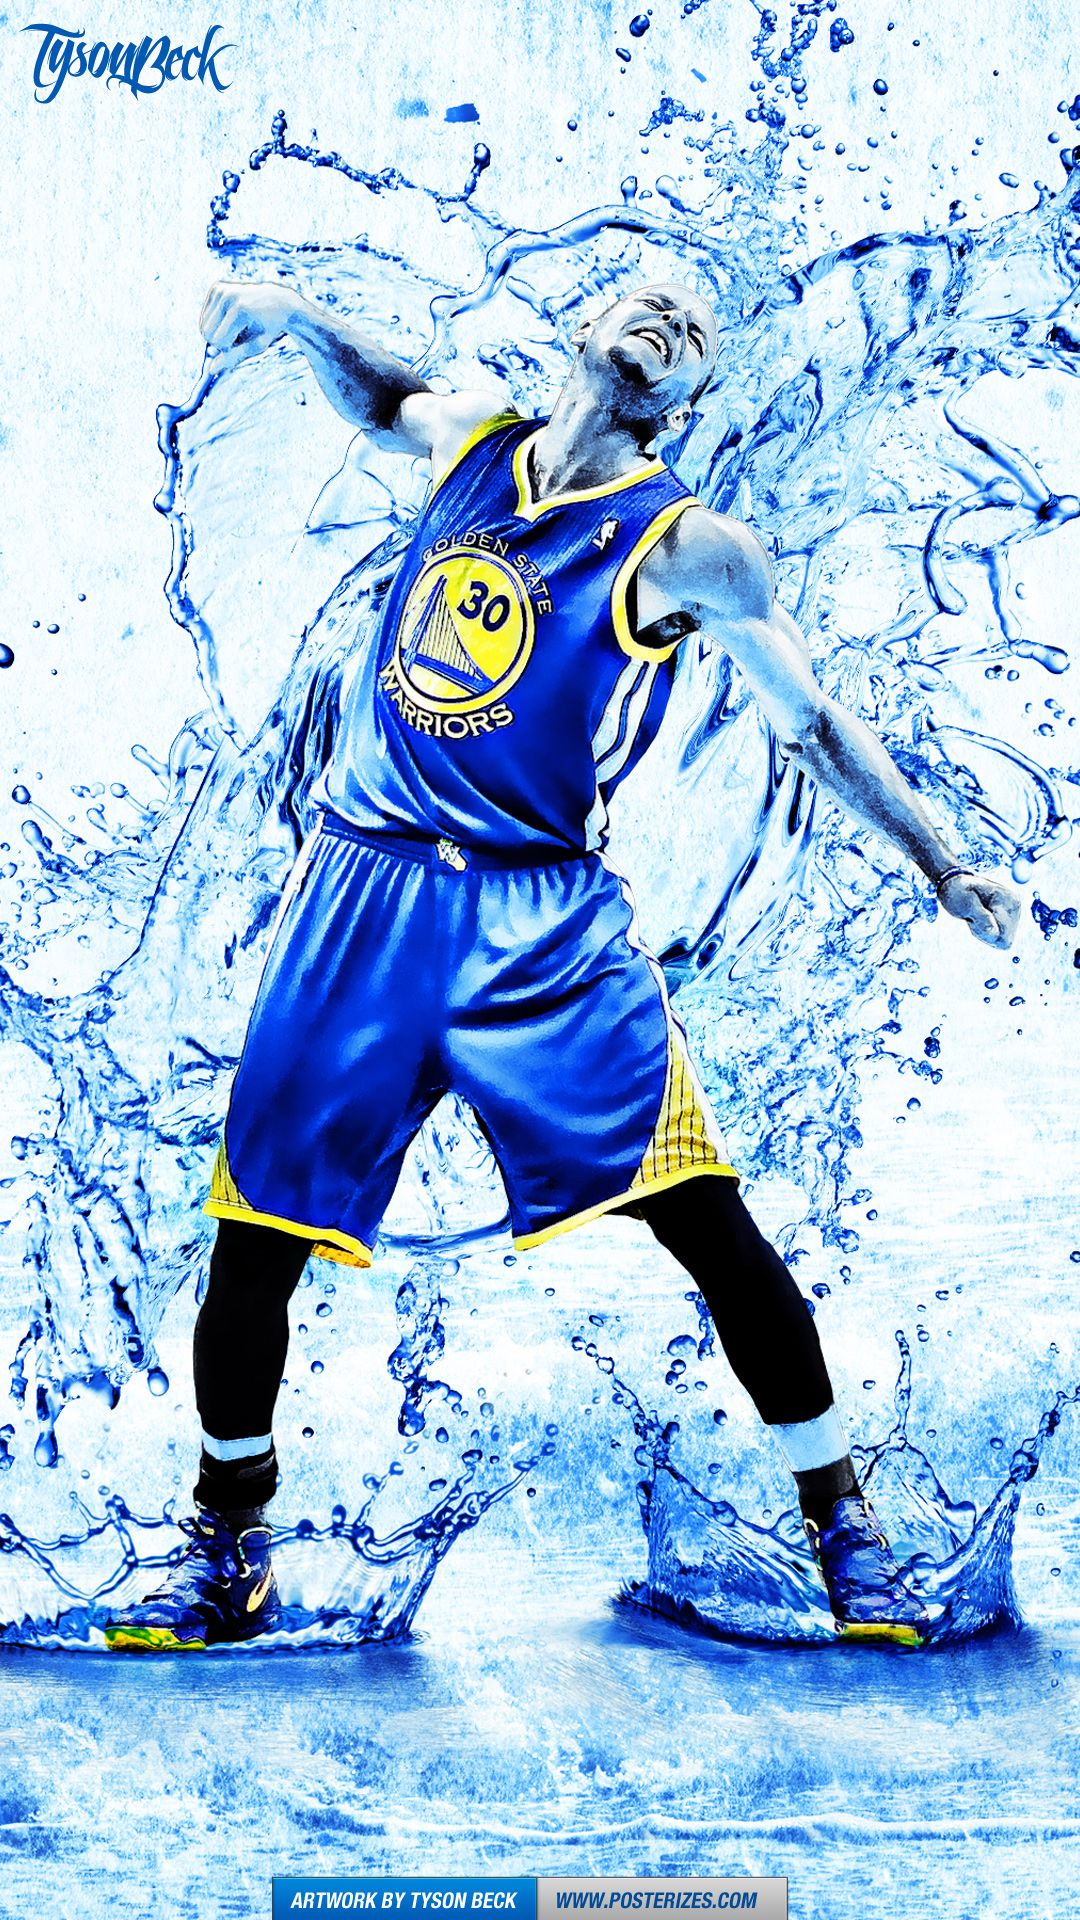 Stephen Curry Splash Wallpaper Posterizes Nba Wallpapers Stephen Curry Nba Wallpapers Stephen Curry Basketball